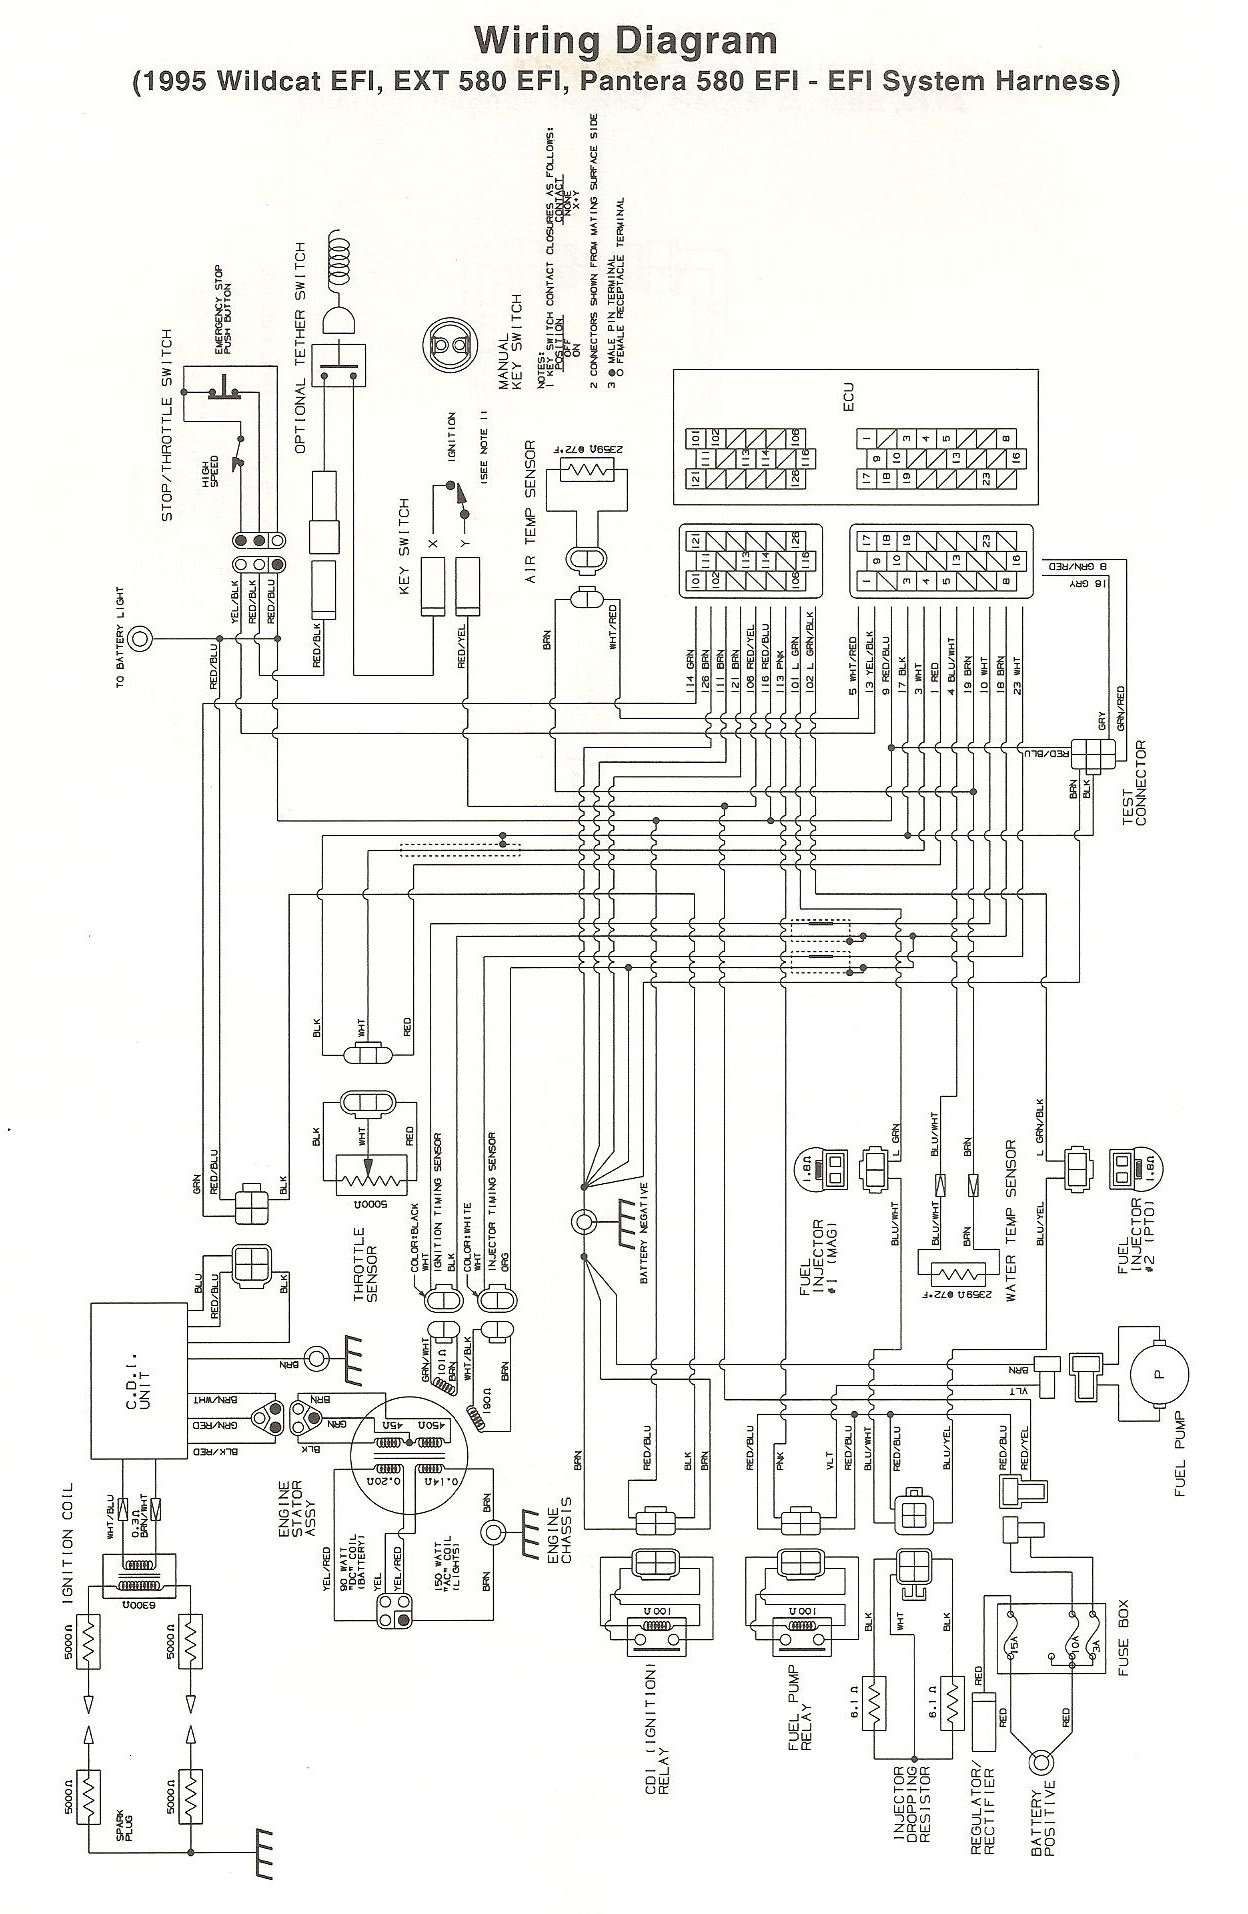 yamaha grizzly 600 wiring diagram yamaha image wiring diagram for yamaha grizzly 700 wiring discover your on yamaha grizzly 600 wiring diagram